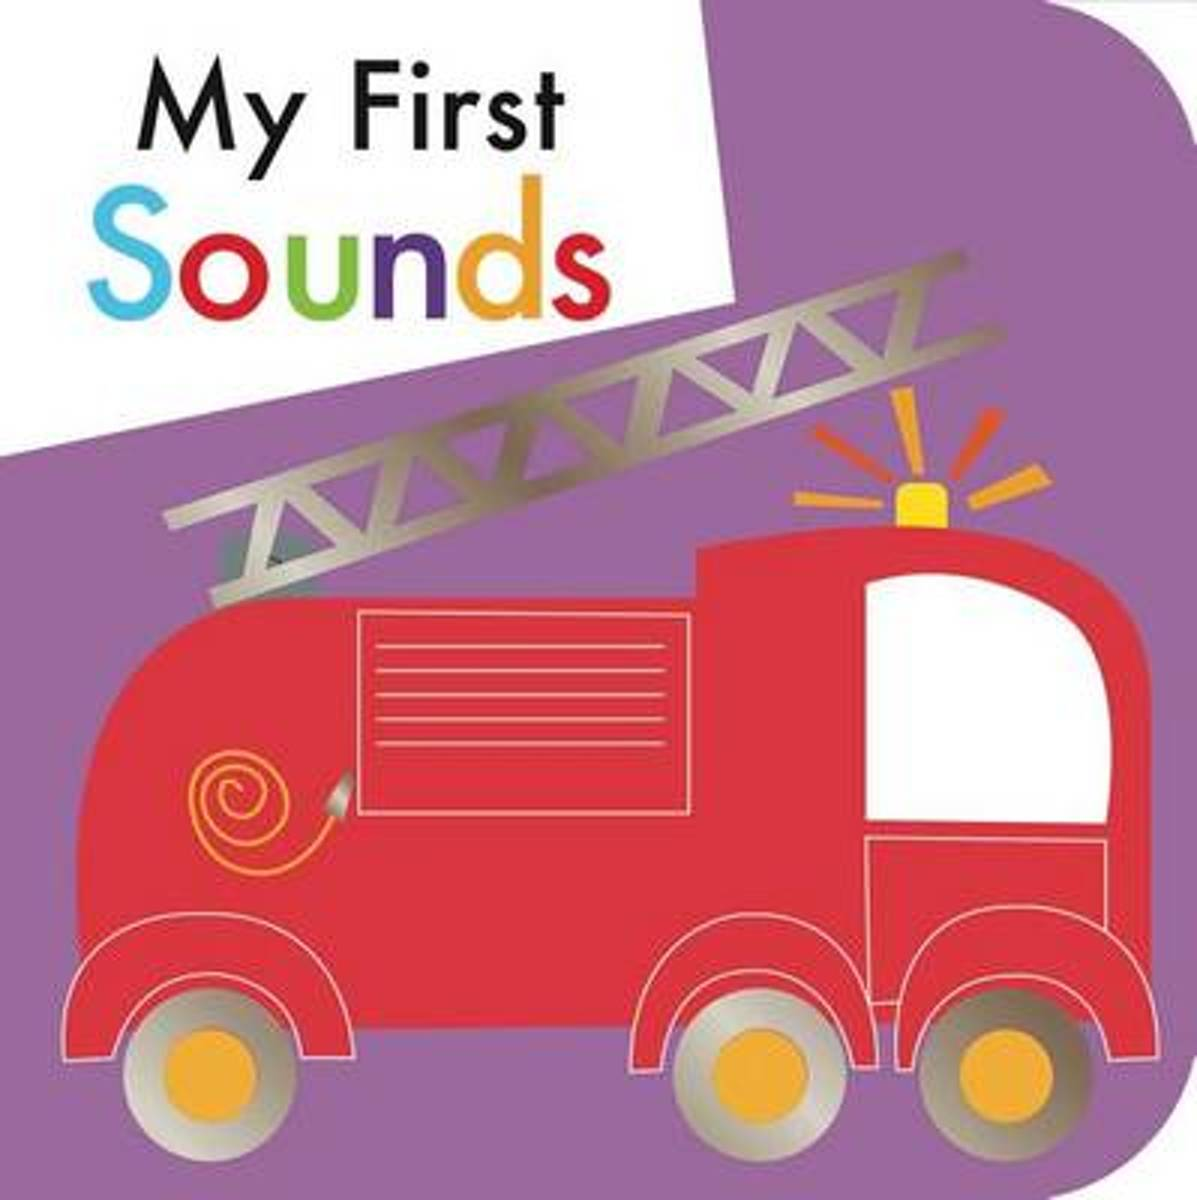 My First Sounds